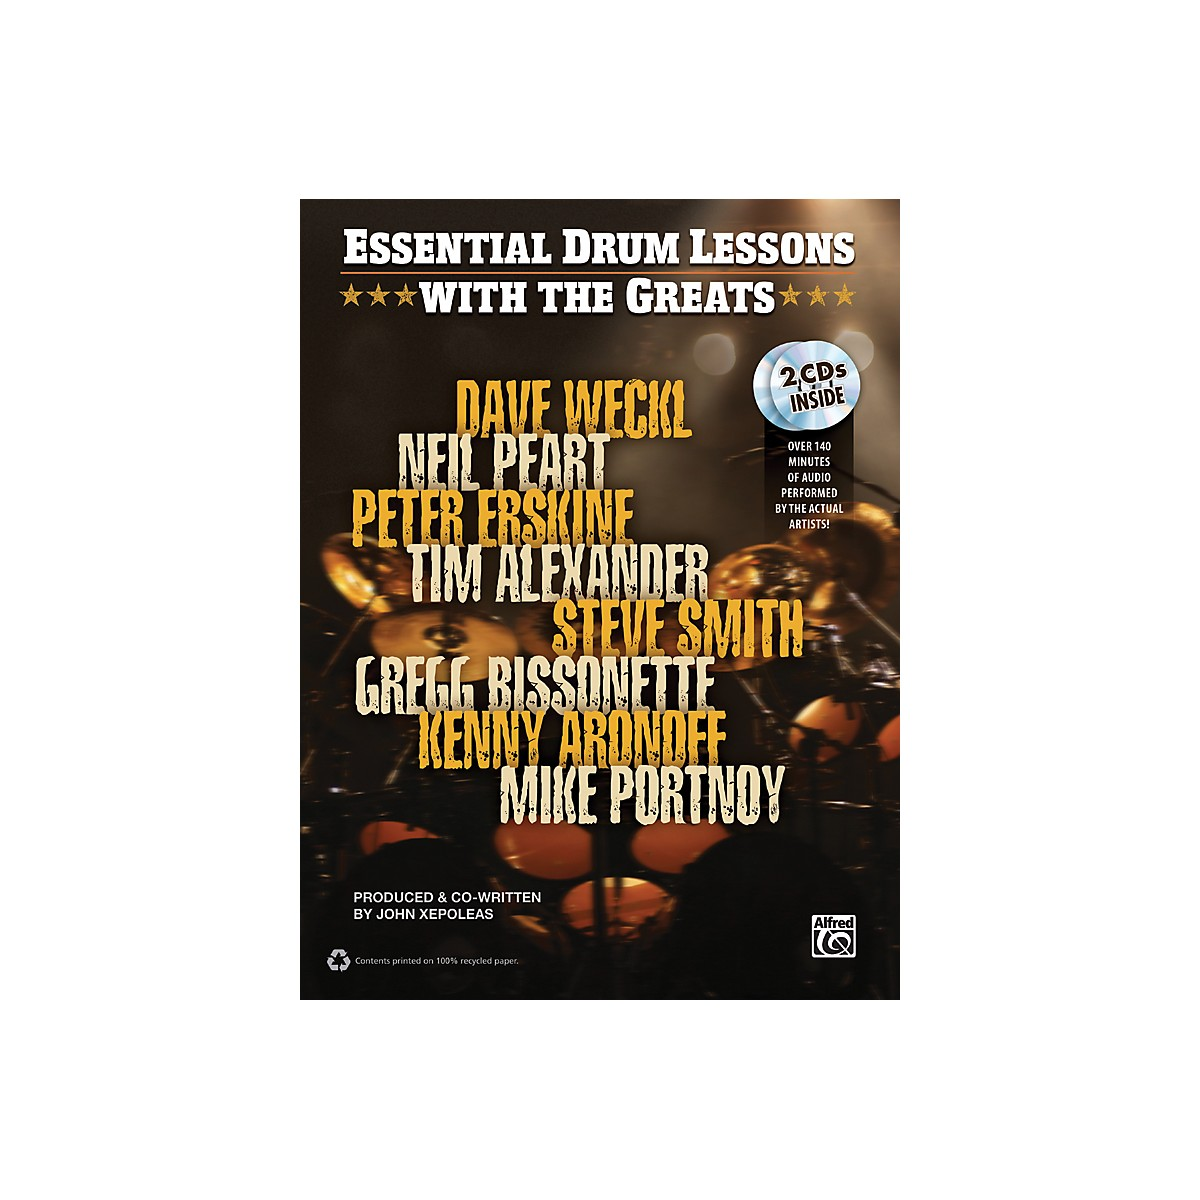 Alfred Essential Drum Lessons with the Greats Book & CD